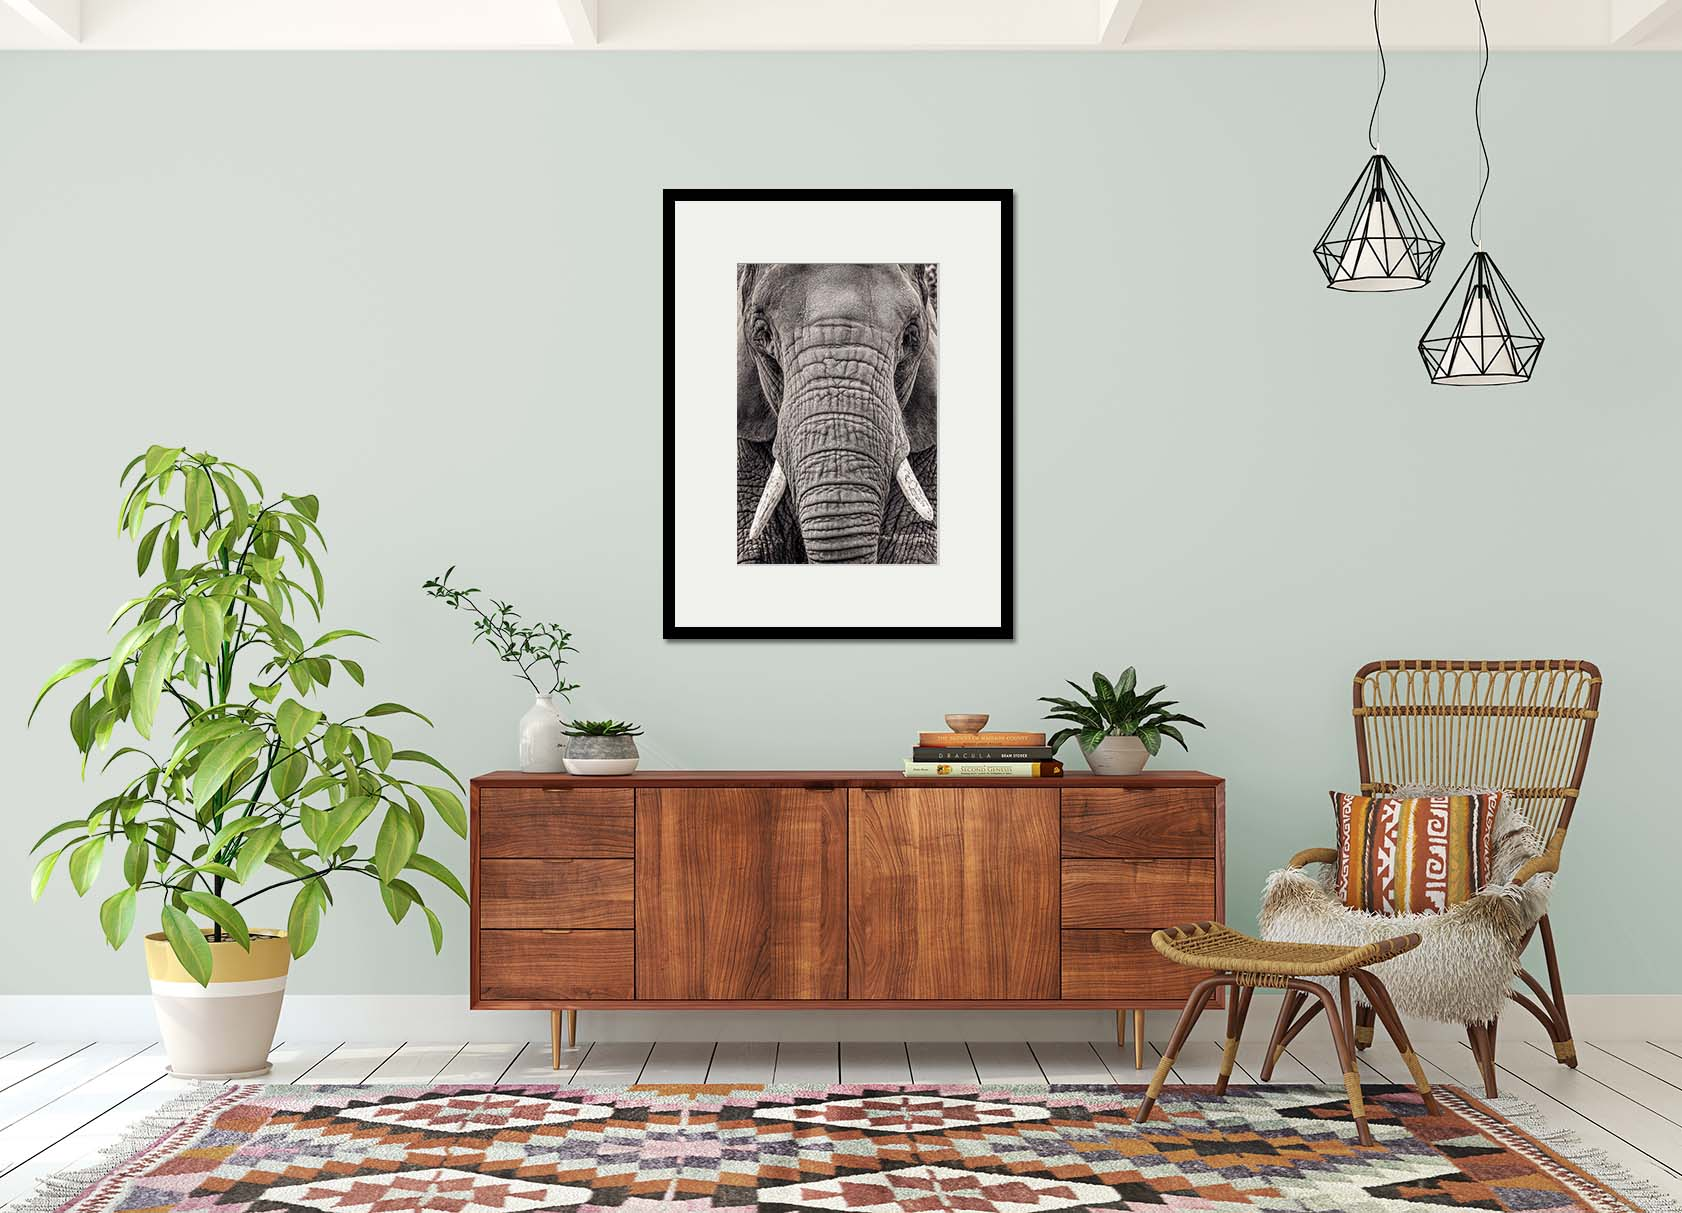 Portrait of an elephant. Limited edition photographic print by fine art photographer Paul Coghlin. Black and white print of an elephant in a sitting room setting.